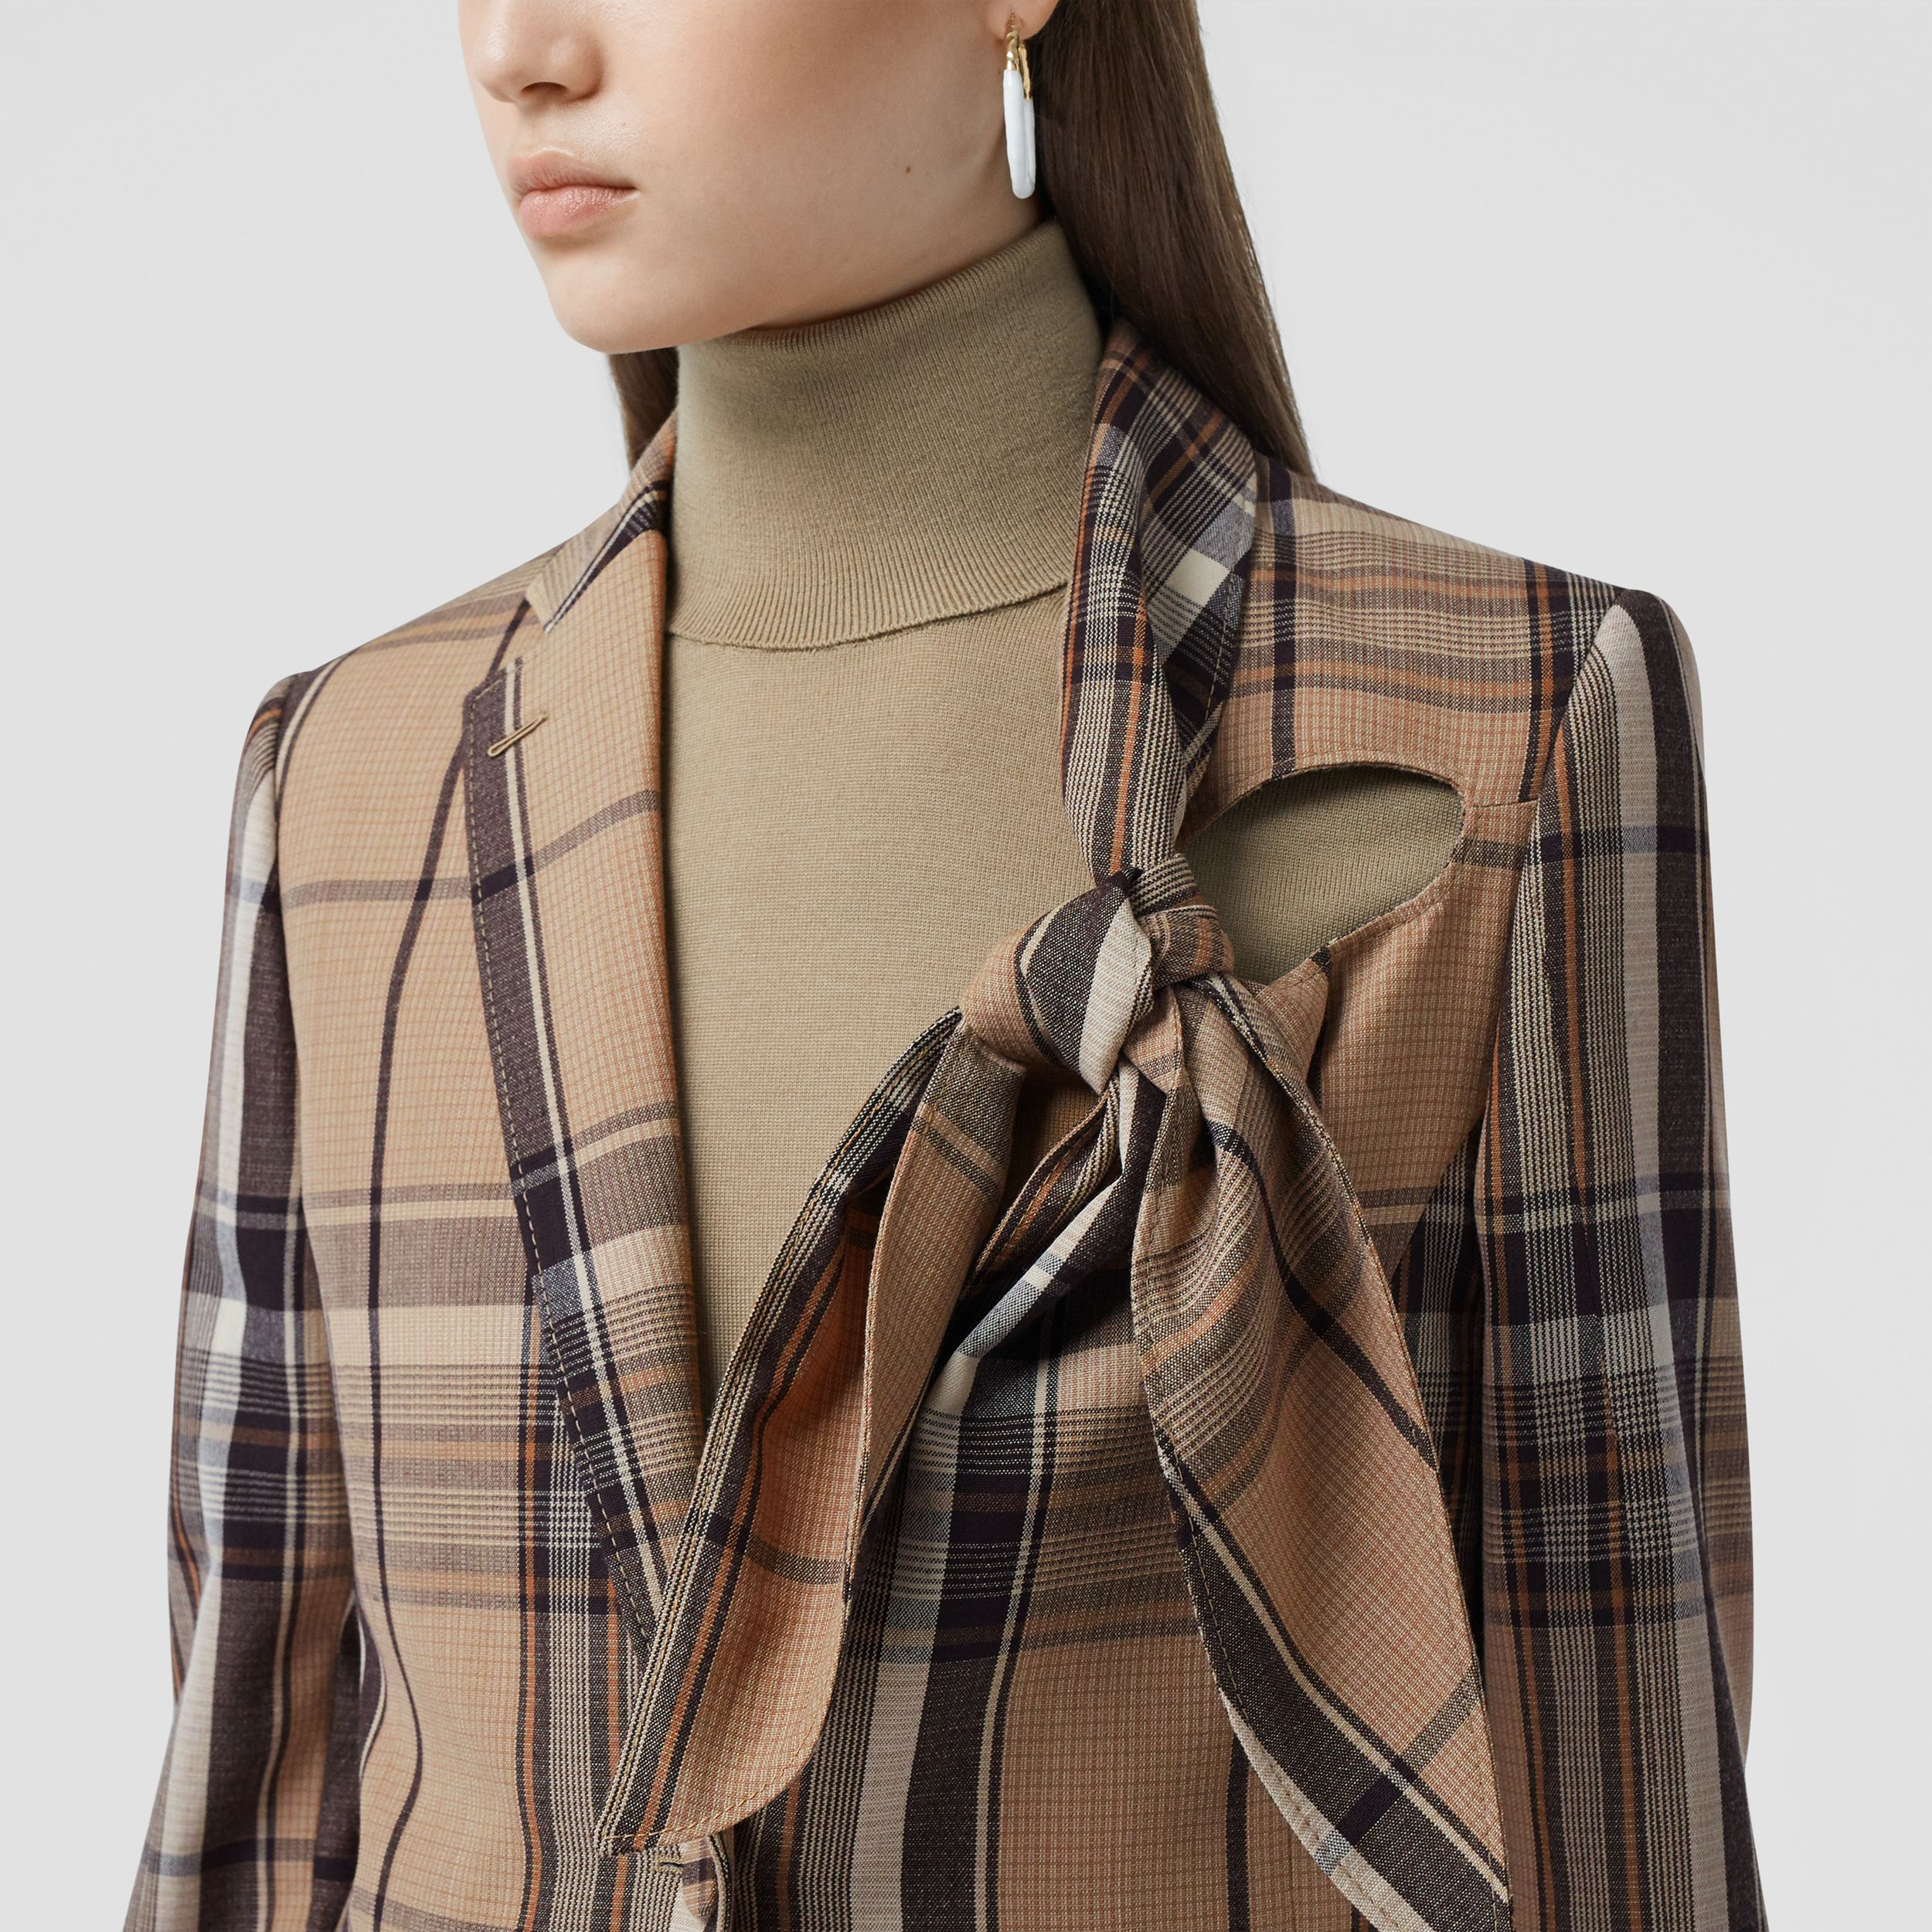 Knot Detail Check Wool Tailored Jacket - Women | Burberry - 2